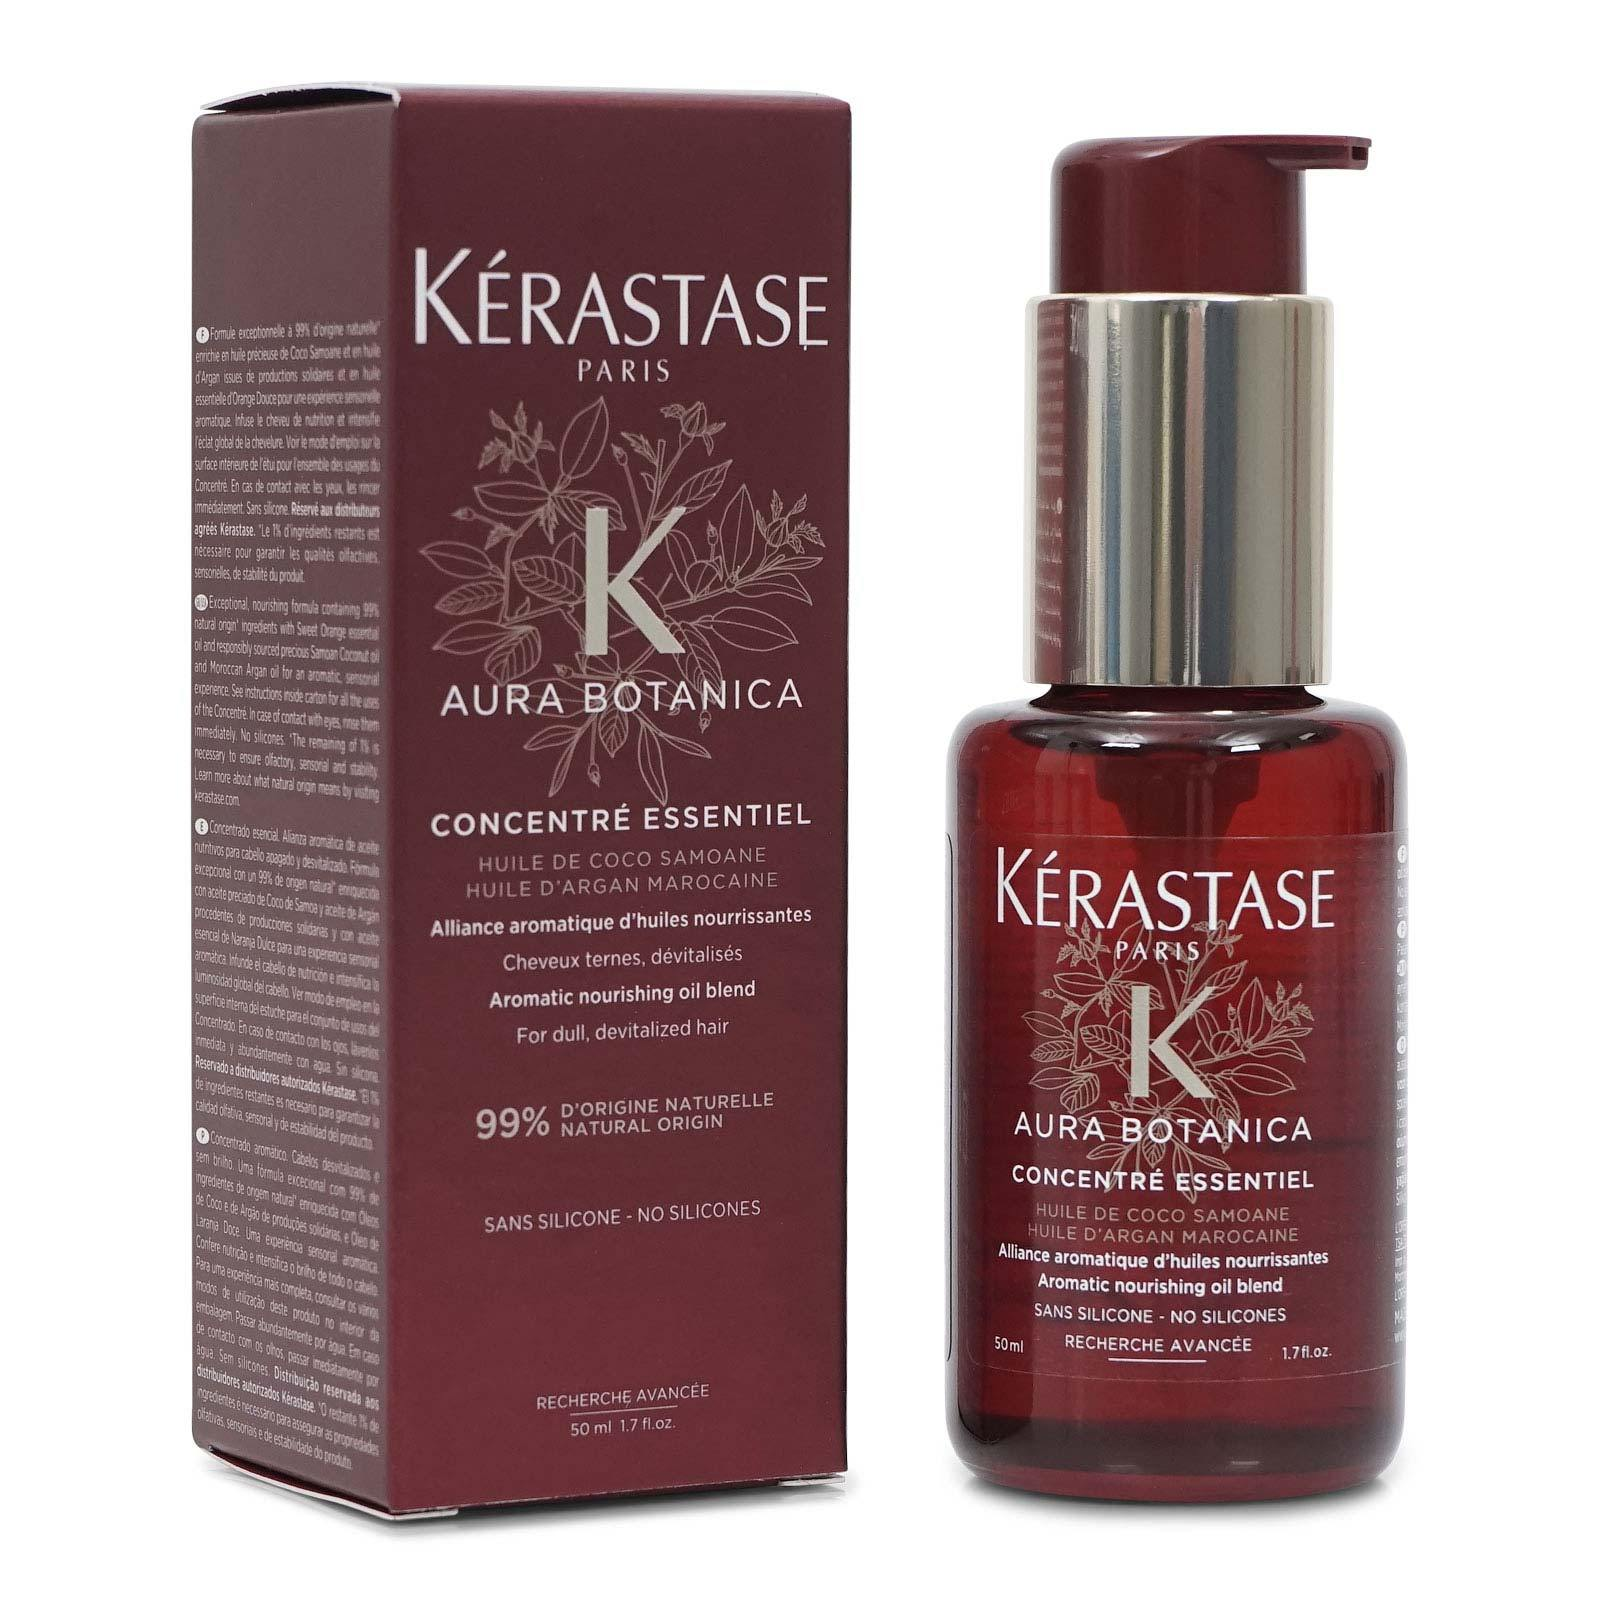 Kerastase Aura Botanica Concentre Essentiel Nourishing Oil Blend 50ml/1.7 oz (3/cs)